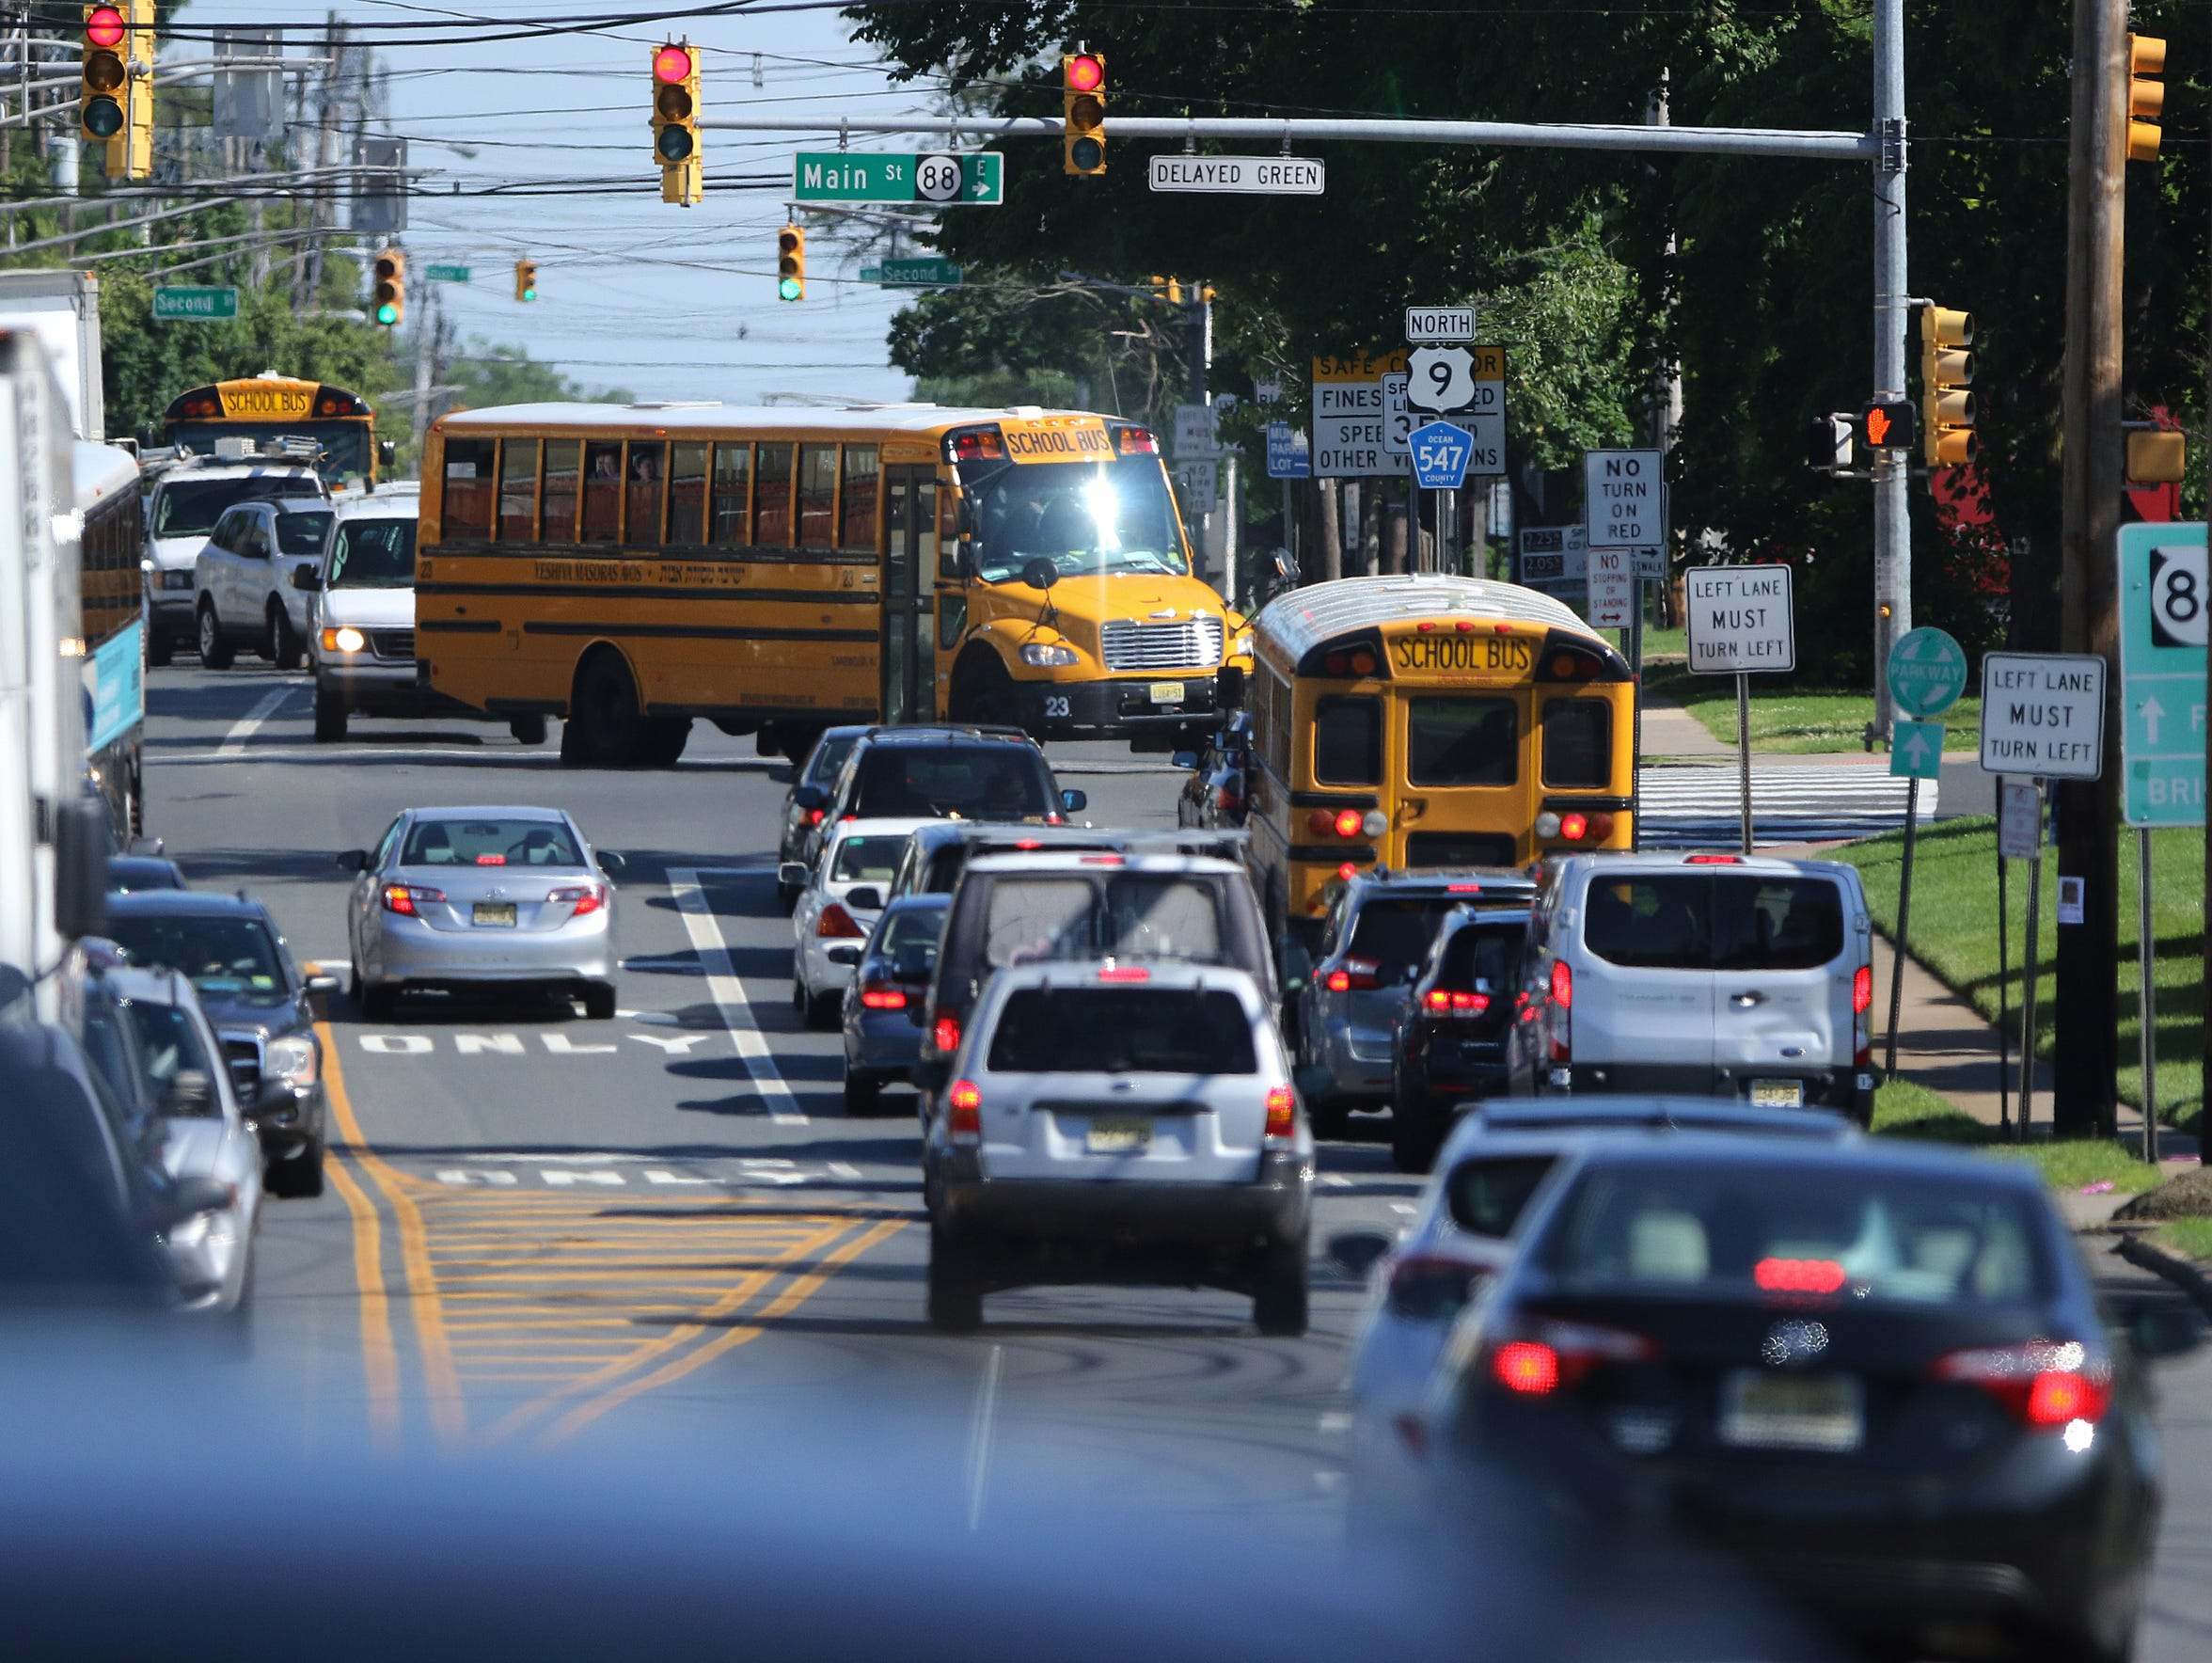 A school bus turns onto Rt. 88 in Lakewood, New Jersey.